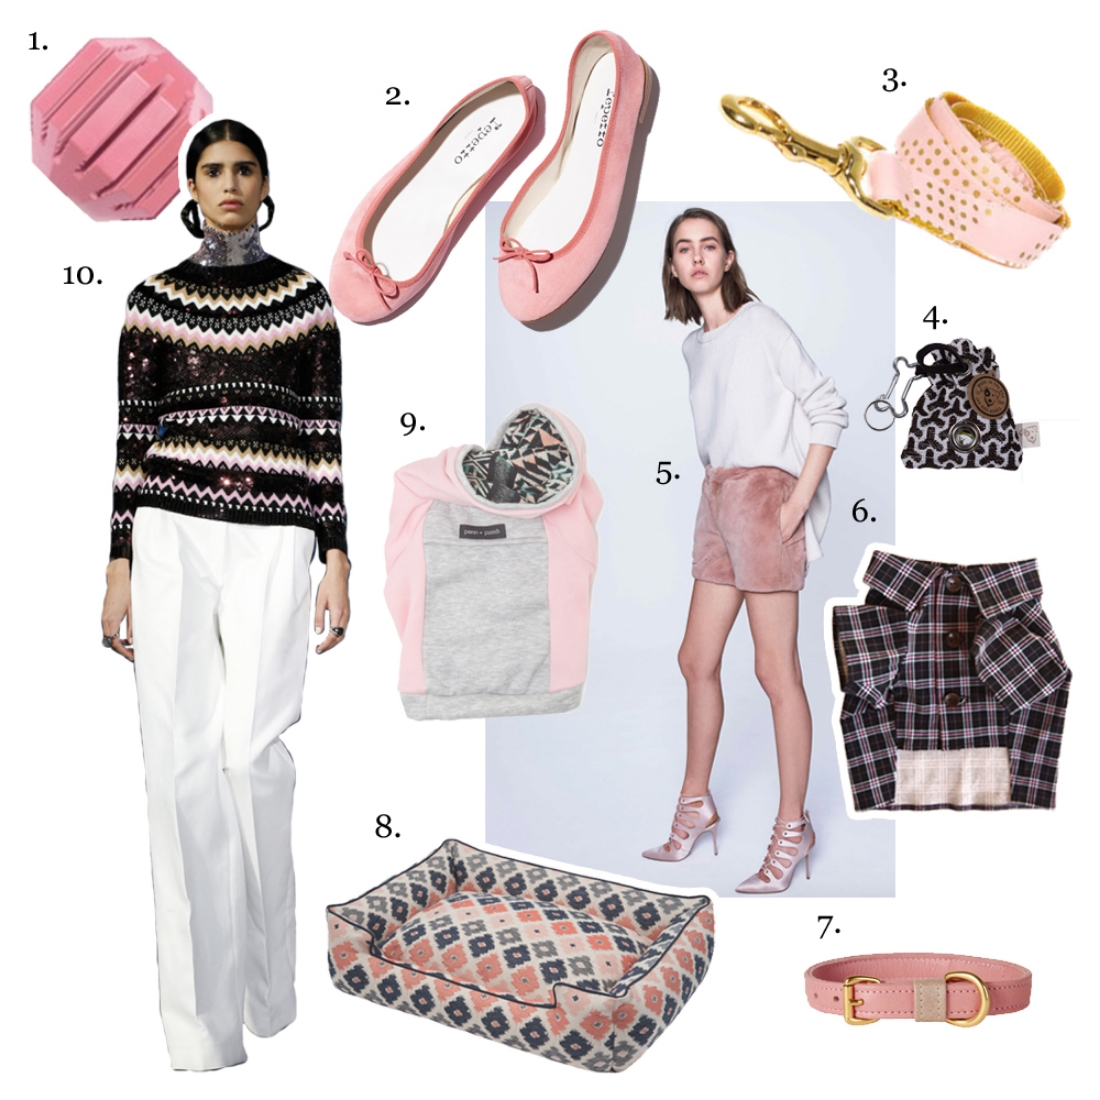 1. Kong,   Activity Ball in Light Pink   2. Reptetto,   Cendrillon Ballerina Flat   3. K9 Couture Co.,   Disco Inferno Leash   4. Jax & Bone,  Eve Chocolate Business Buddy  5. Adam Lippes,   Pre-Fall 2015    6. Dog Threads,   Pink Plaid Button Down   7. Yark,   Paige Collar   8. Jax & Bone,   Geo Lounge Bed   9.Penn + Pooch ,  The Emerson in Drip Herringbone & Pink   10. Dior,   Pre-Fall Collection 2015